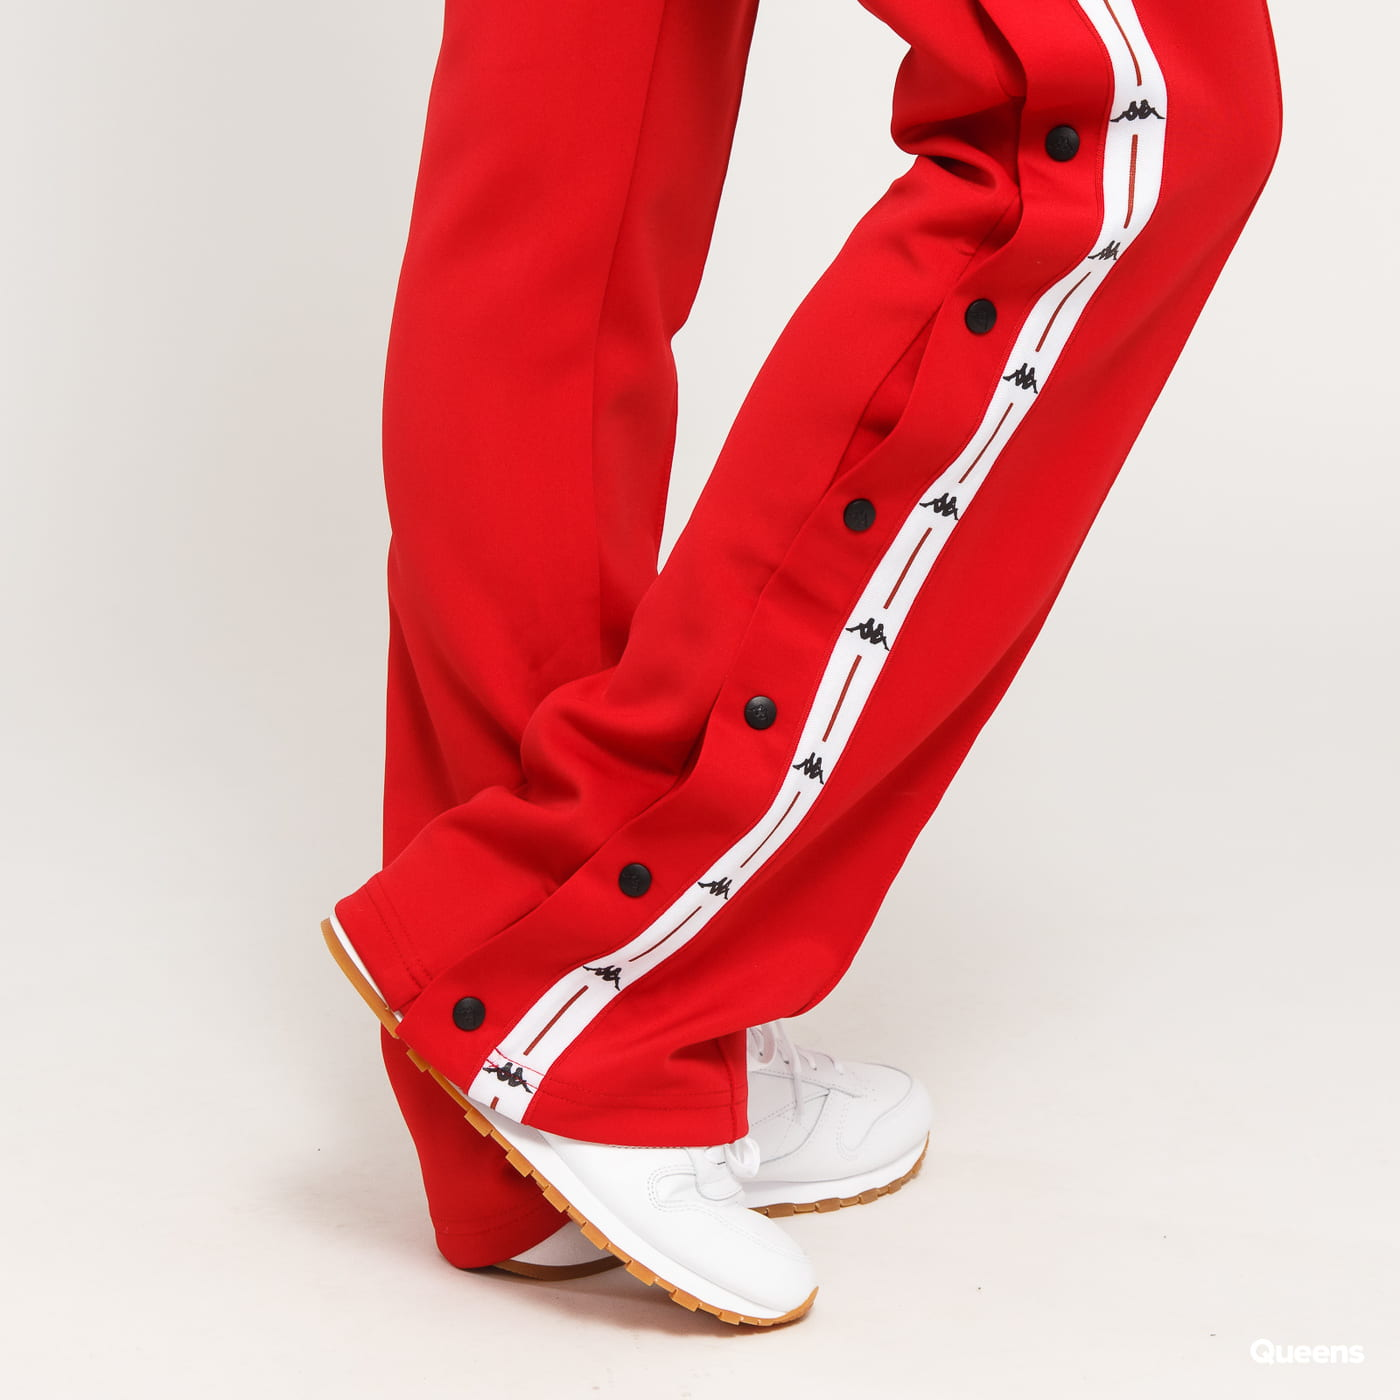 Kappa Authentic JPN Banity red